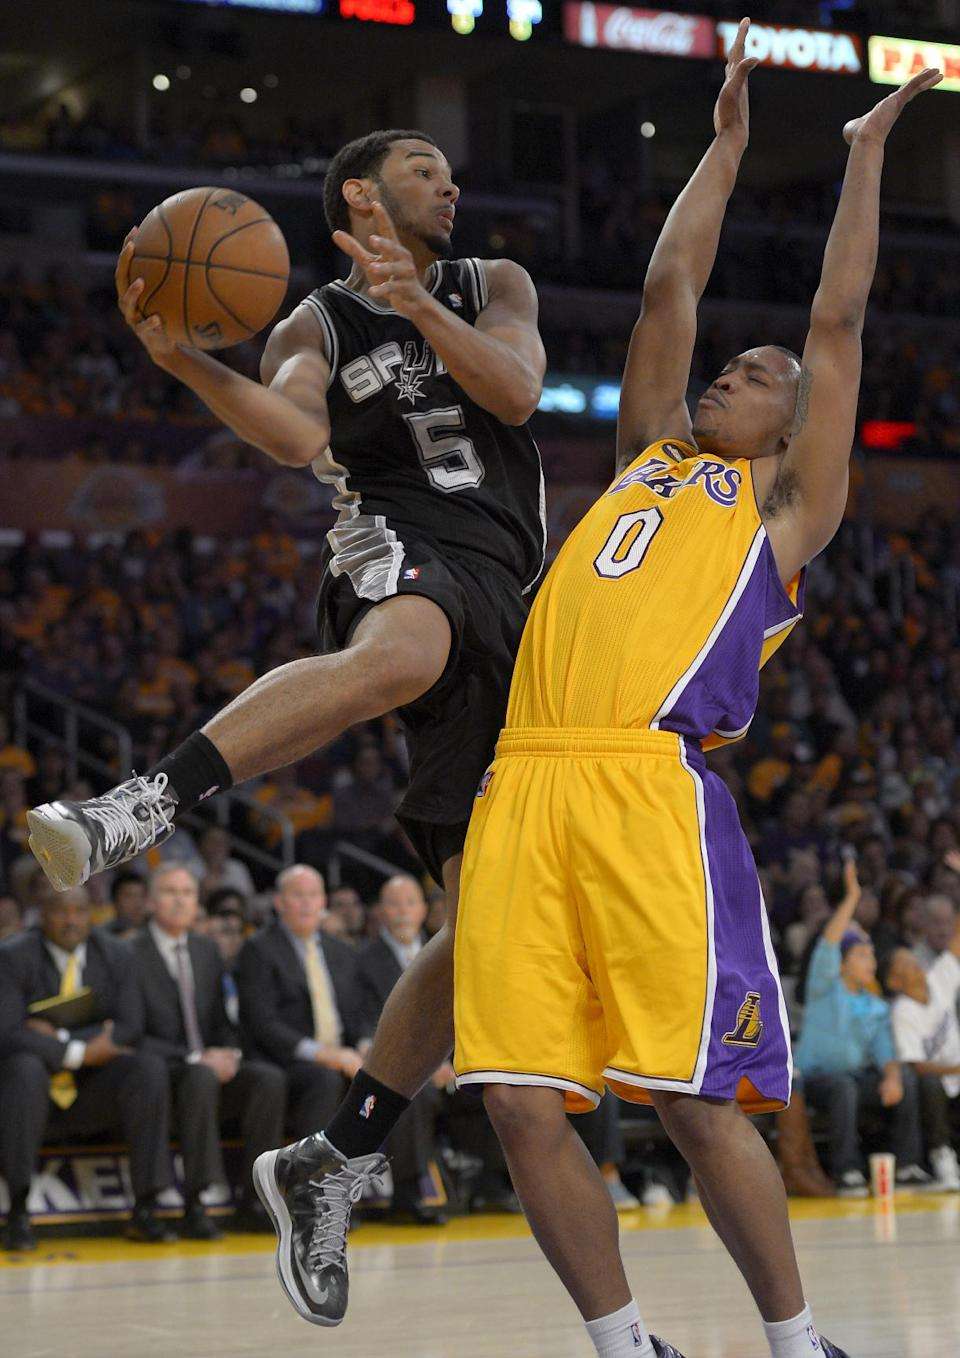 San Antonio Spurs guard Cory Joseph, left, passes around Los Angeles Lakers guard Andrew Goudelock during the first half in Game 3 of a first-round NBA basketball playoff series, Friday, April 26, 2013, in Los Angeles. (AP Photo/Mark J. Terrill)